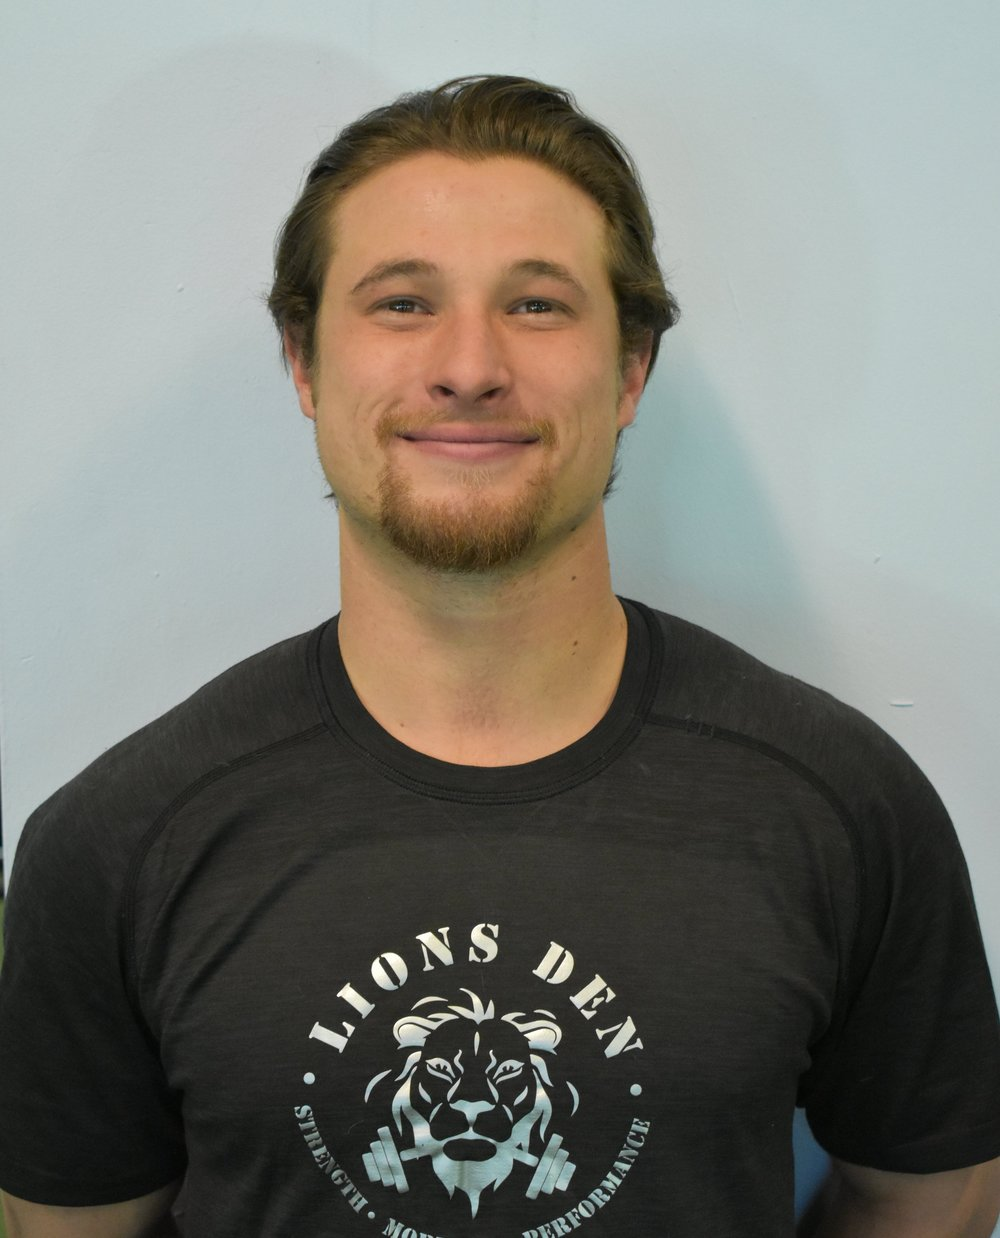 ZacharyCoach - MWOD Institute certified Mobility WOD Movement & Mobility Specialists Level 1, Registered Yoga Teacher (RYT) 200 with Yoga Alliance and pursuing a Bachelors degree in Integrative Medicine at Metropolitan State University of Denver